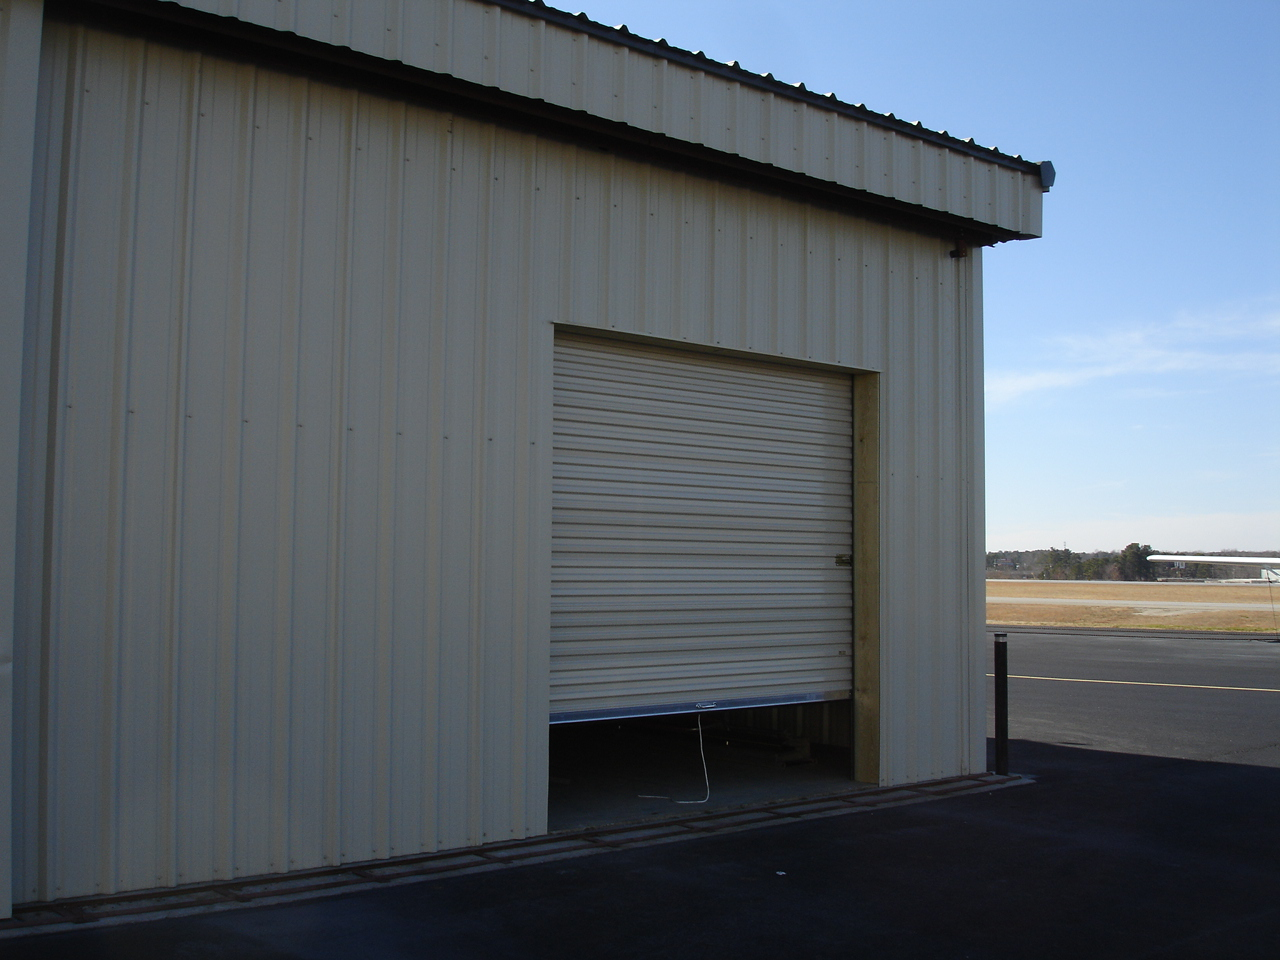 AirHarbor Storage Photos